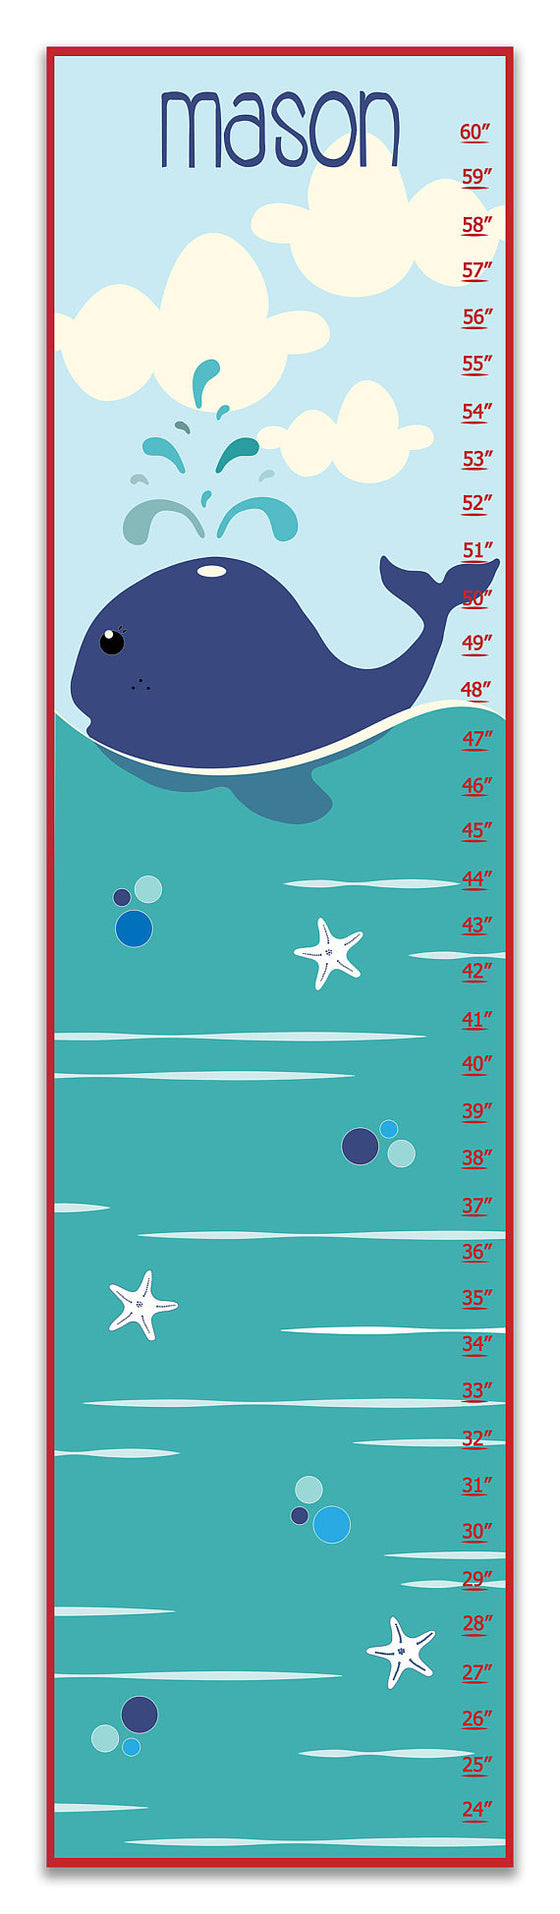 Whale Personalized Growth Chart - Gifts for Baby Boy - Nursery Decor